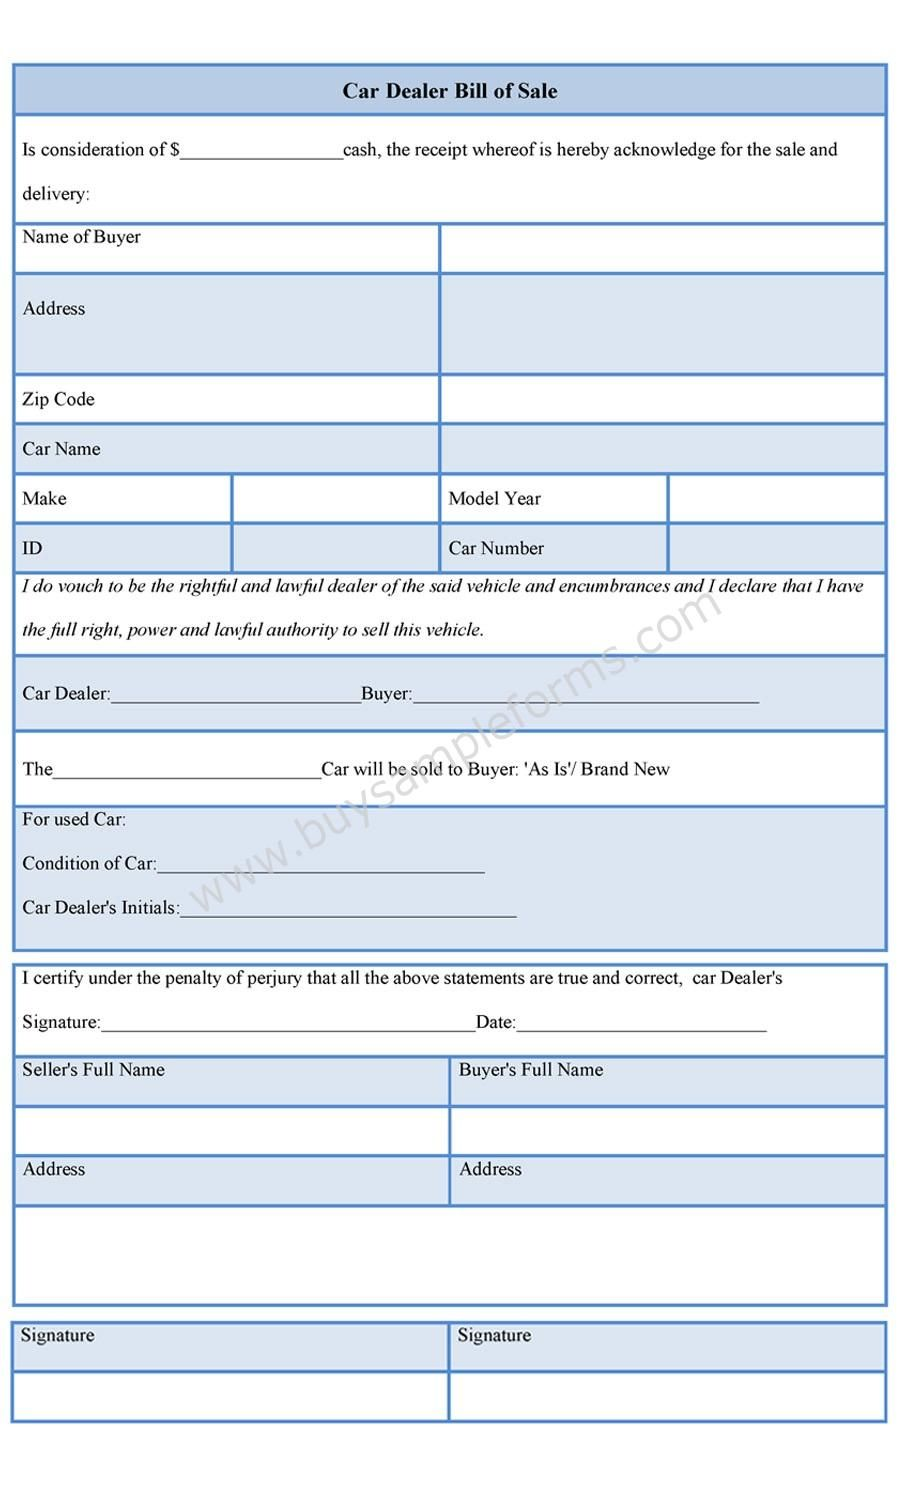 Sample Companies Complaint Template Available Online Download It